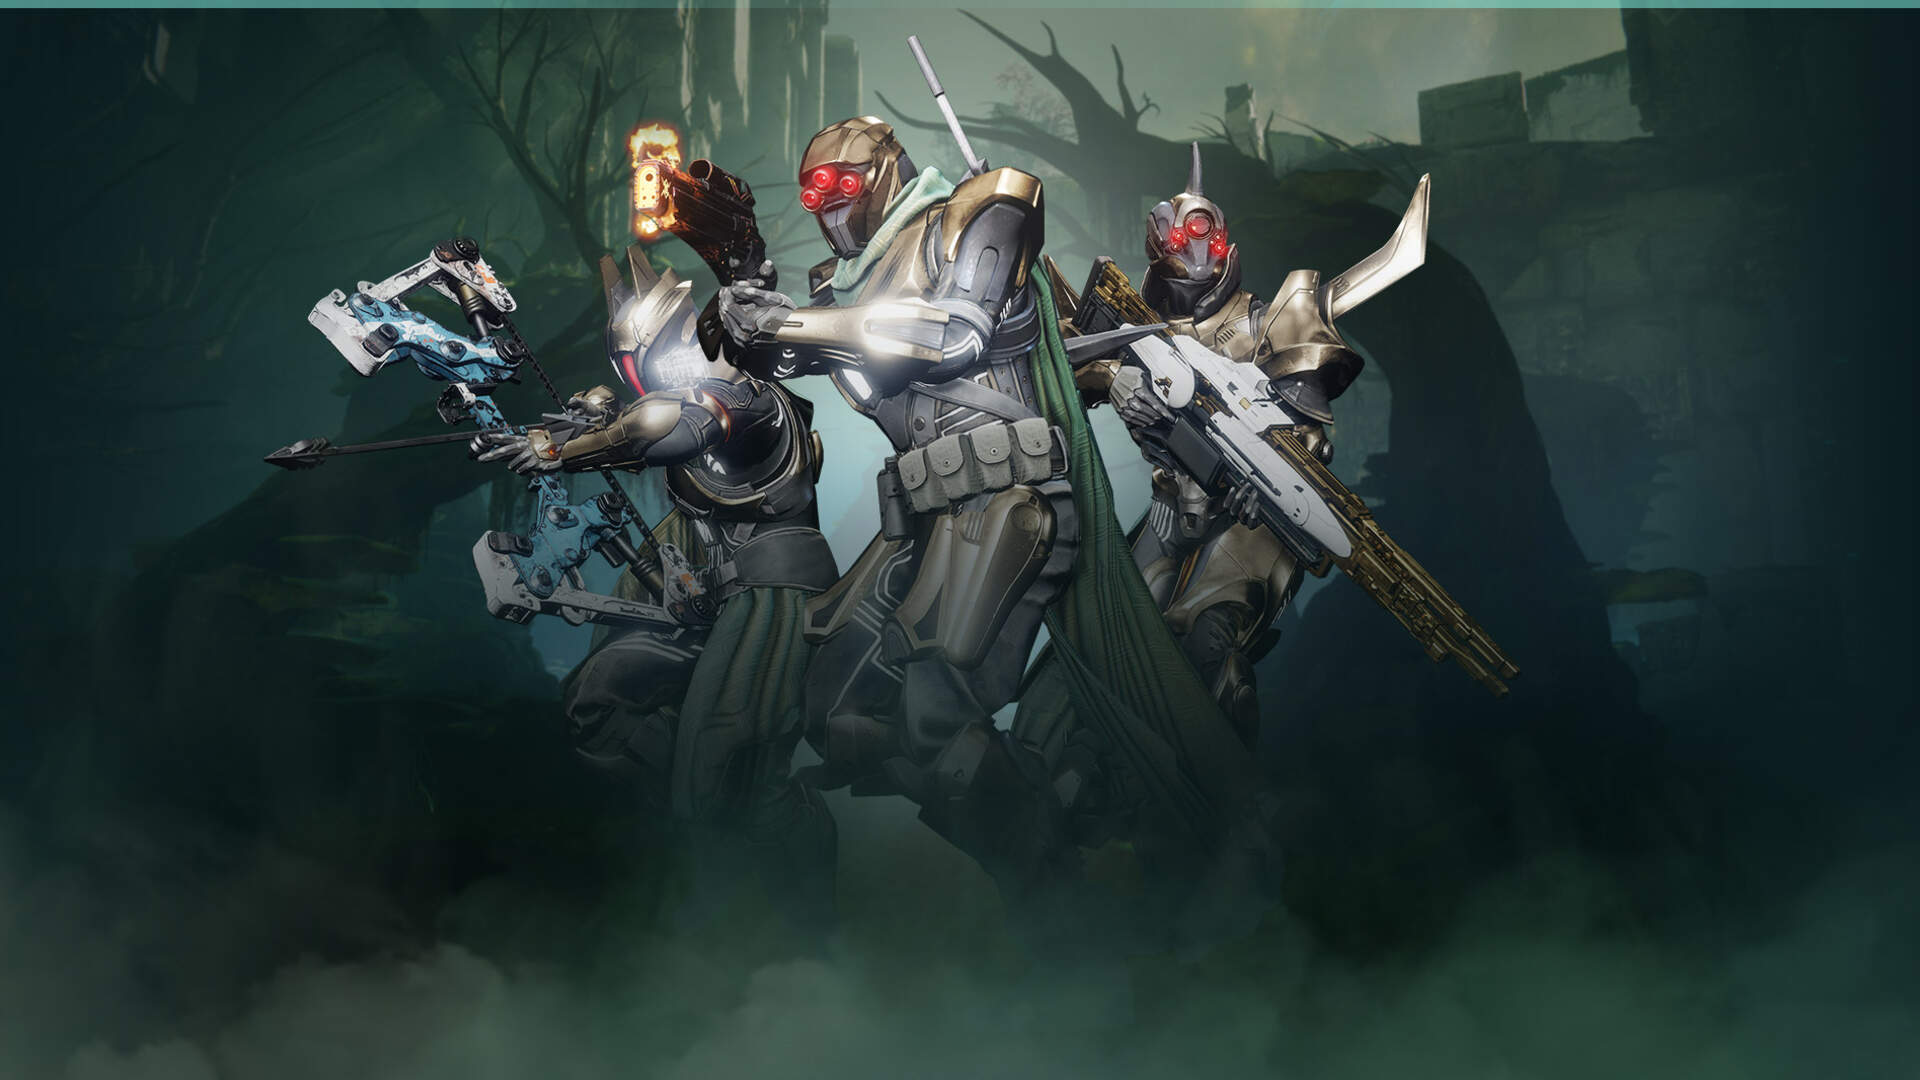 Destiny 2: Shadowkeep Review: Moon's Haunted and So Is My Playtime